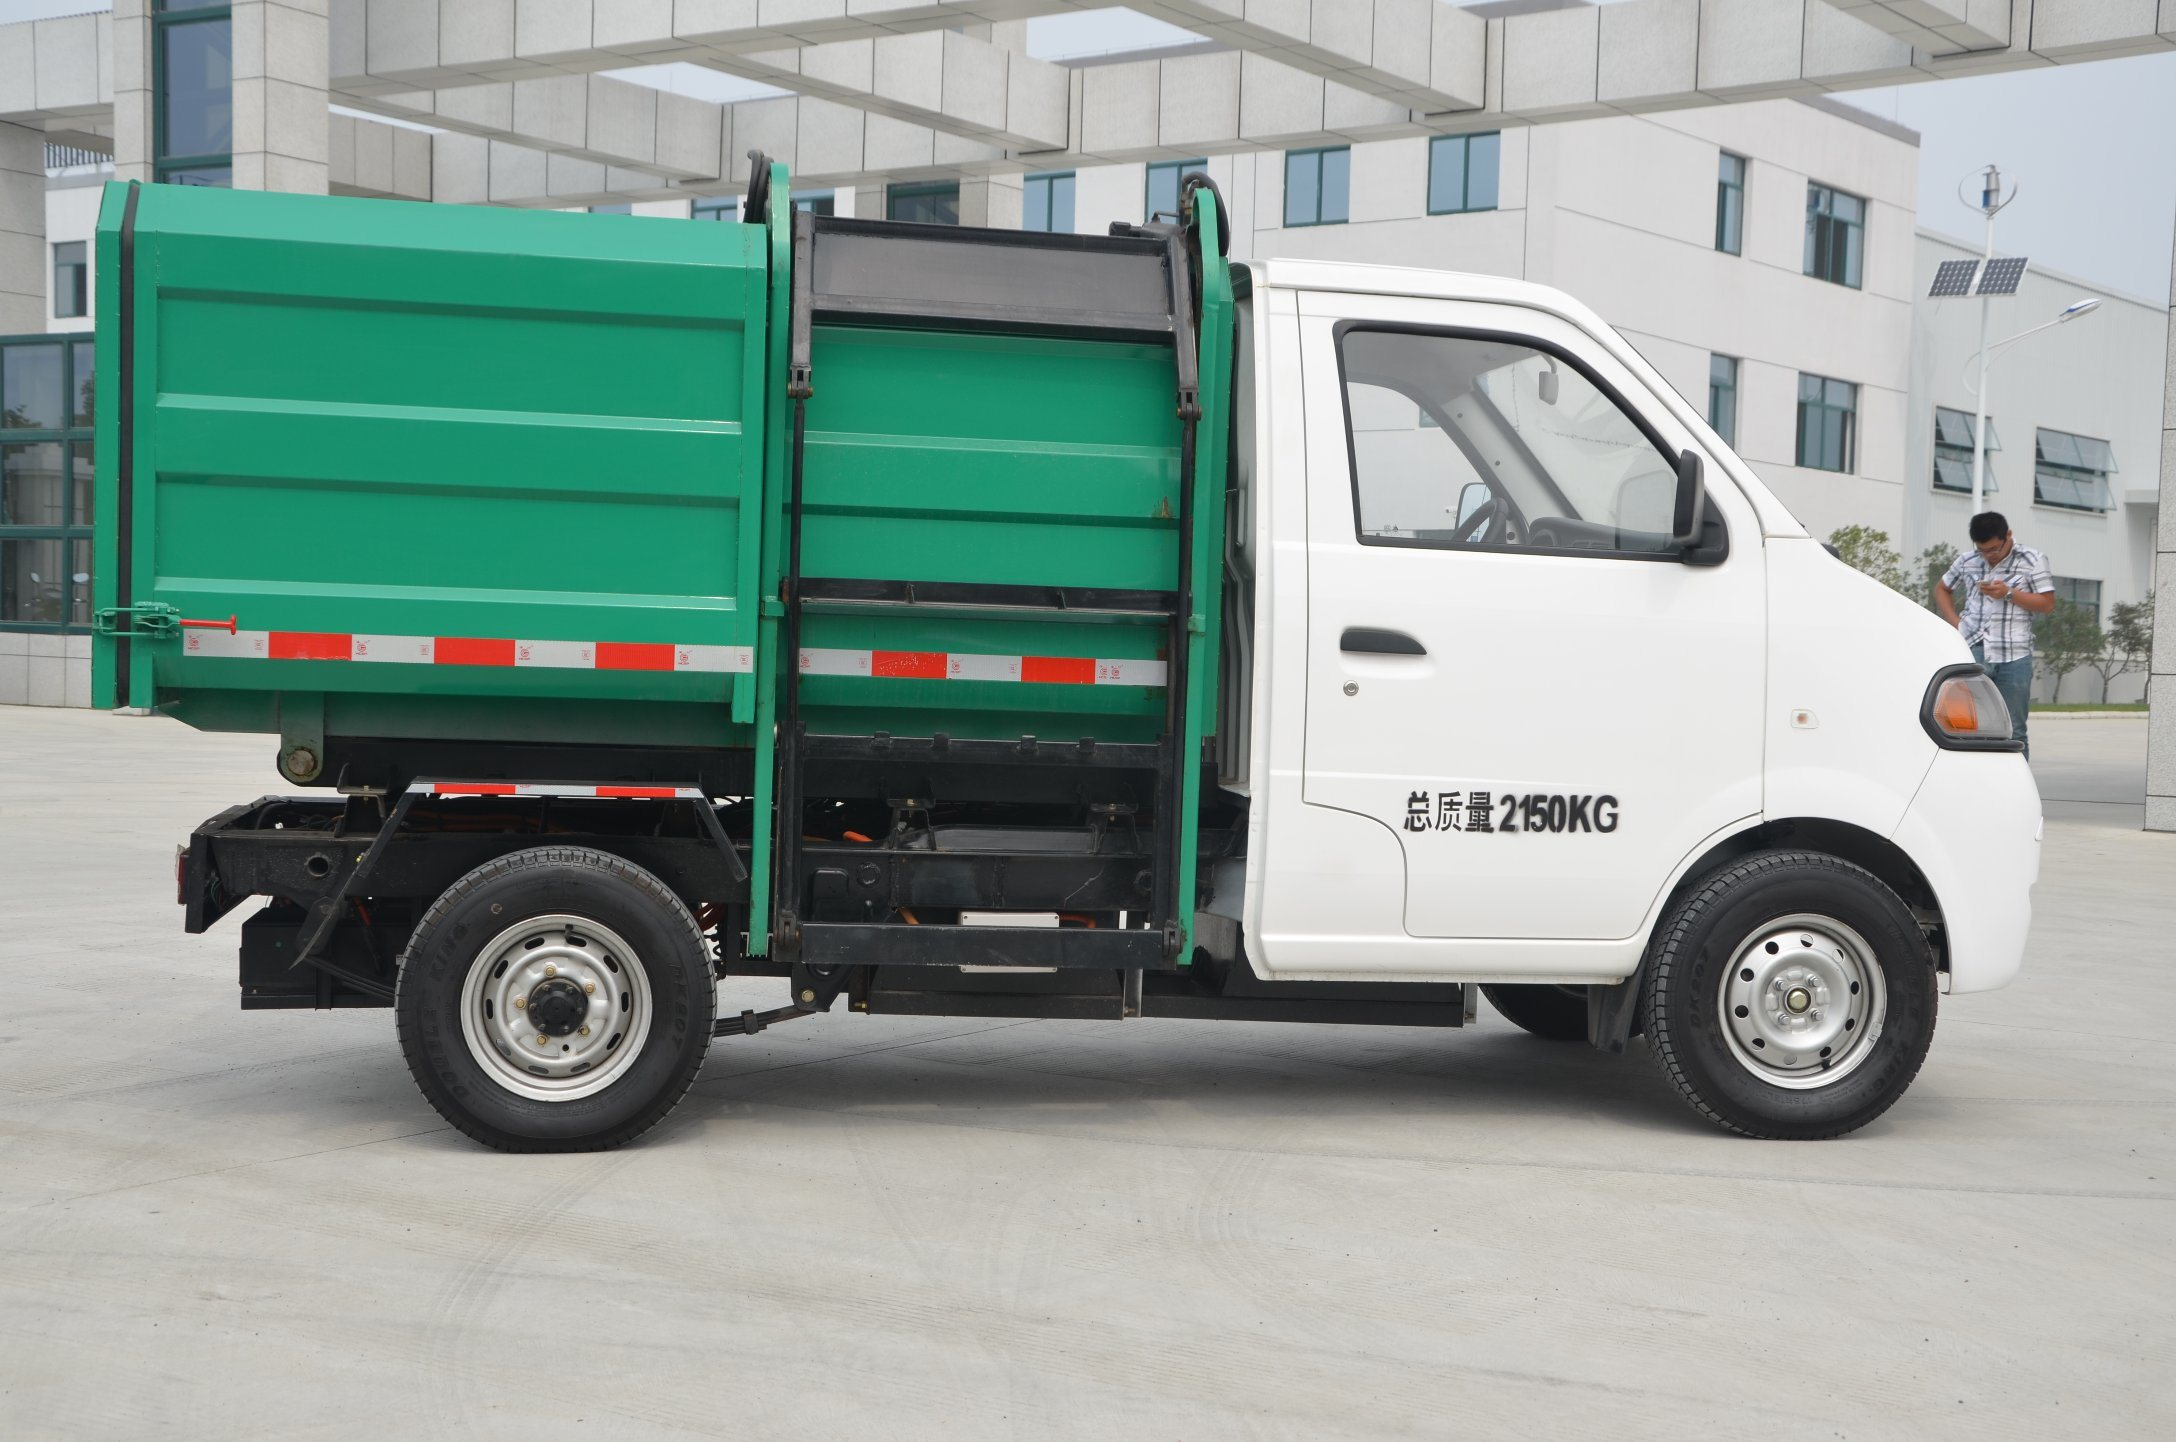 Electric Urban Garbage Truck with Detachable Container